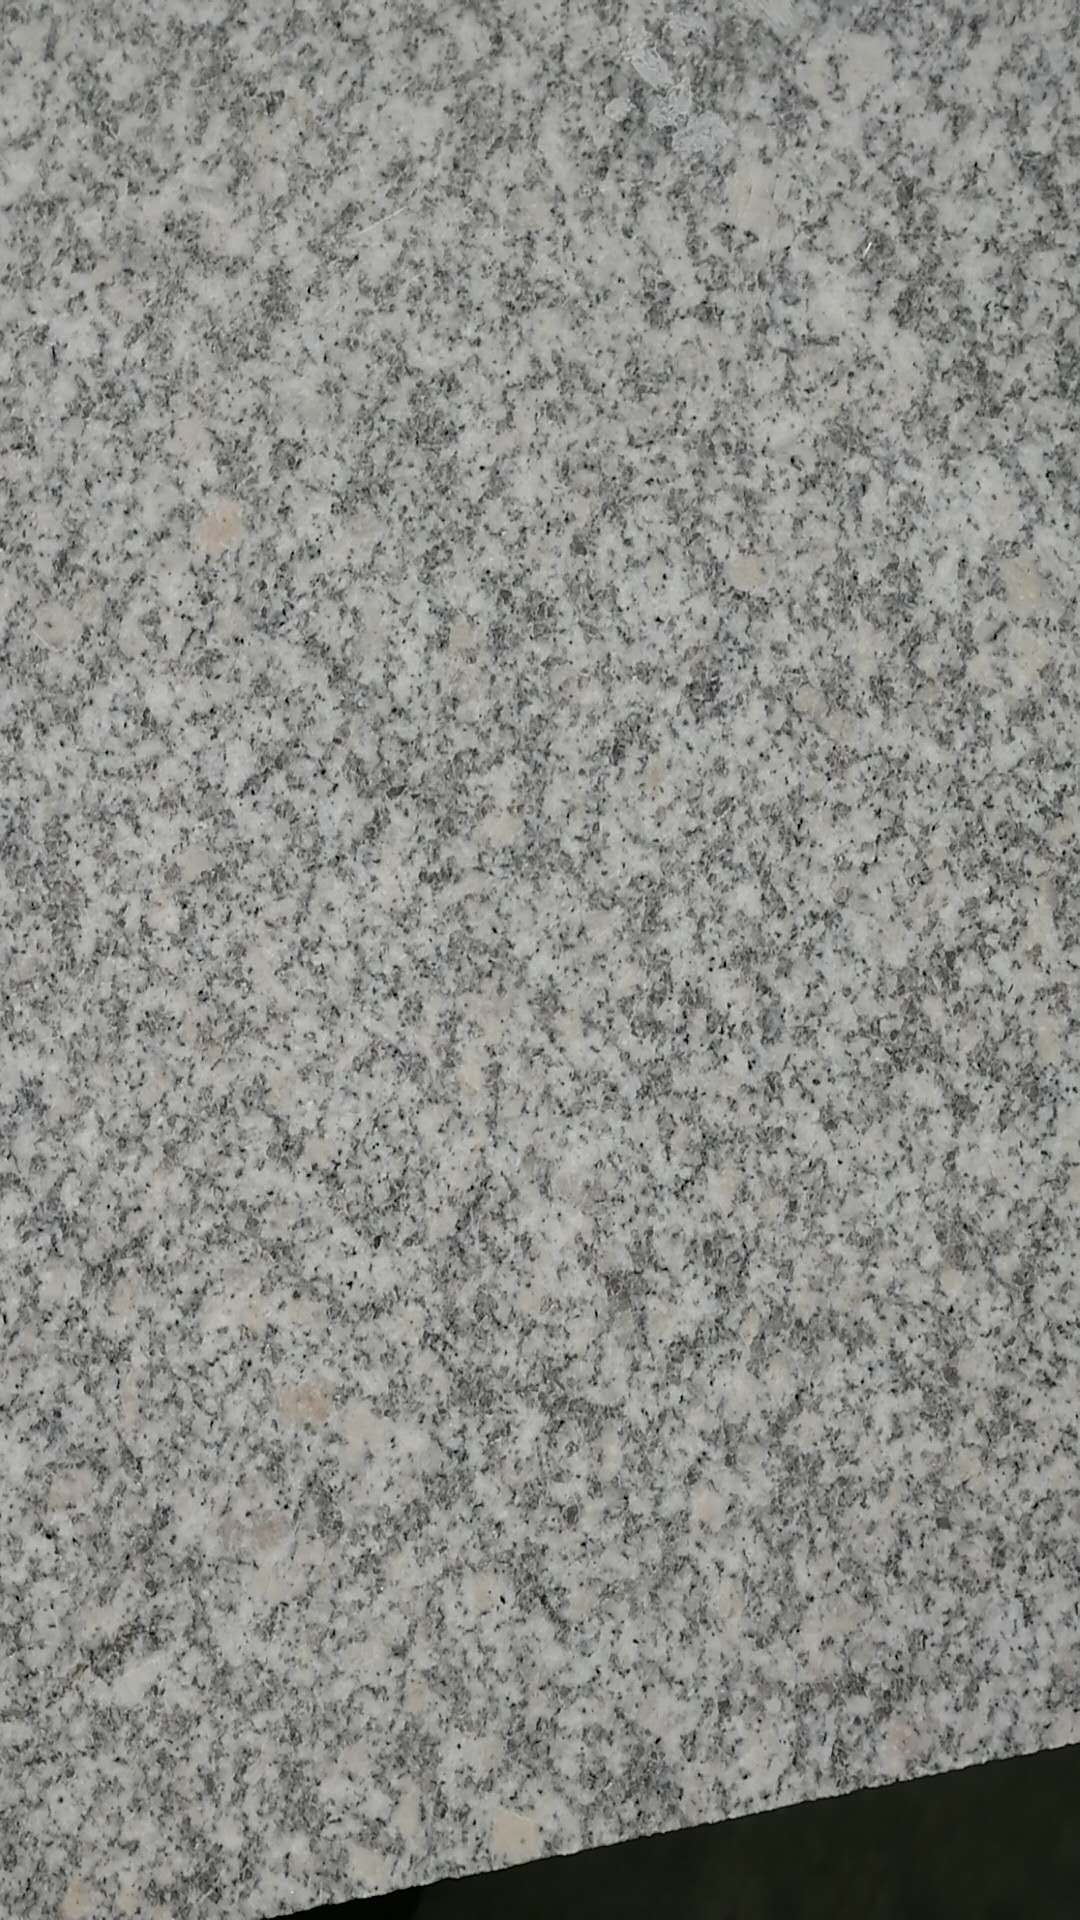 Jade White G359 Shandong White China Granite Tiles